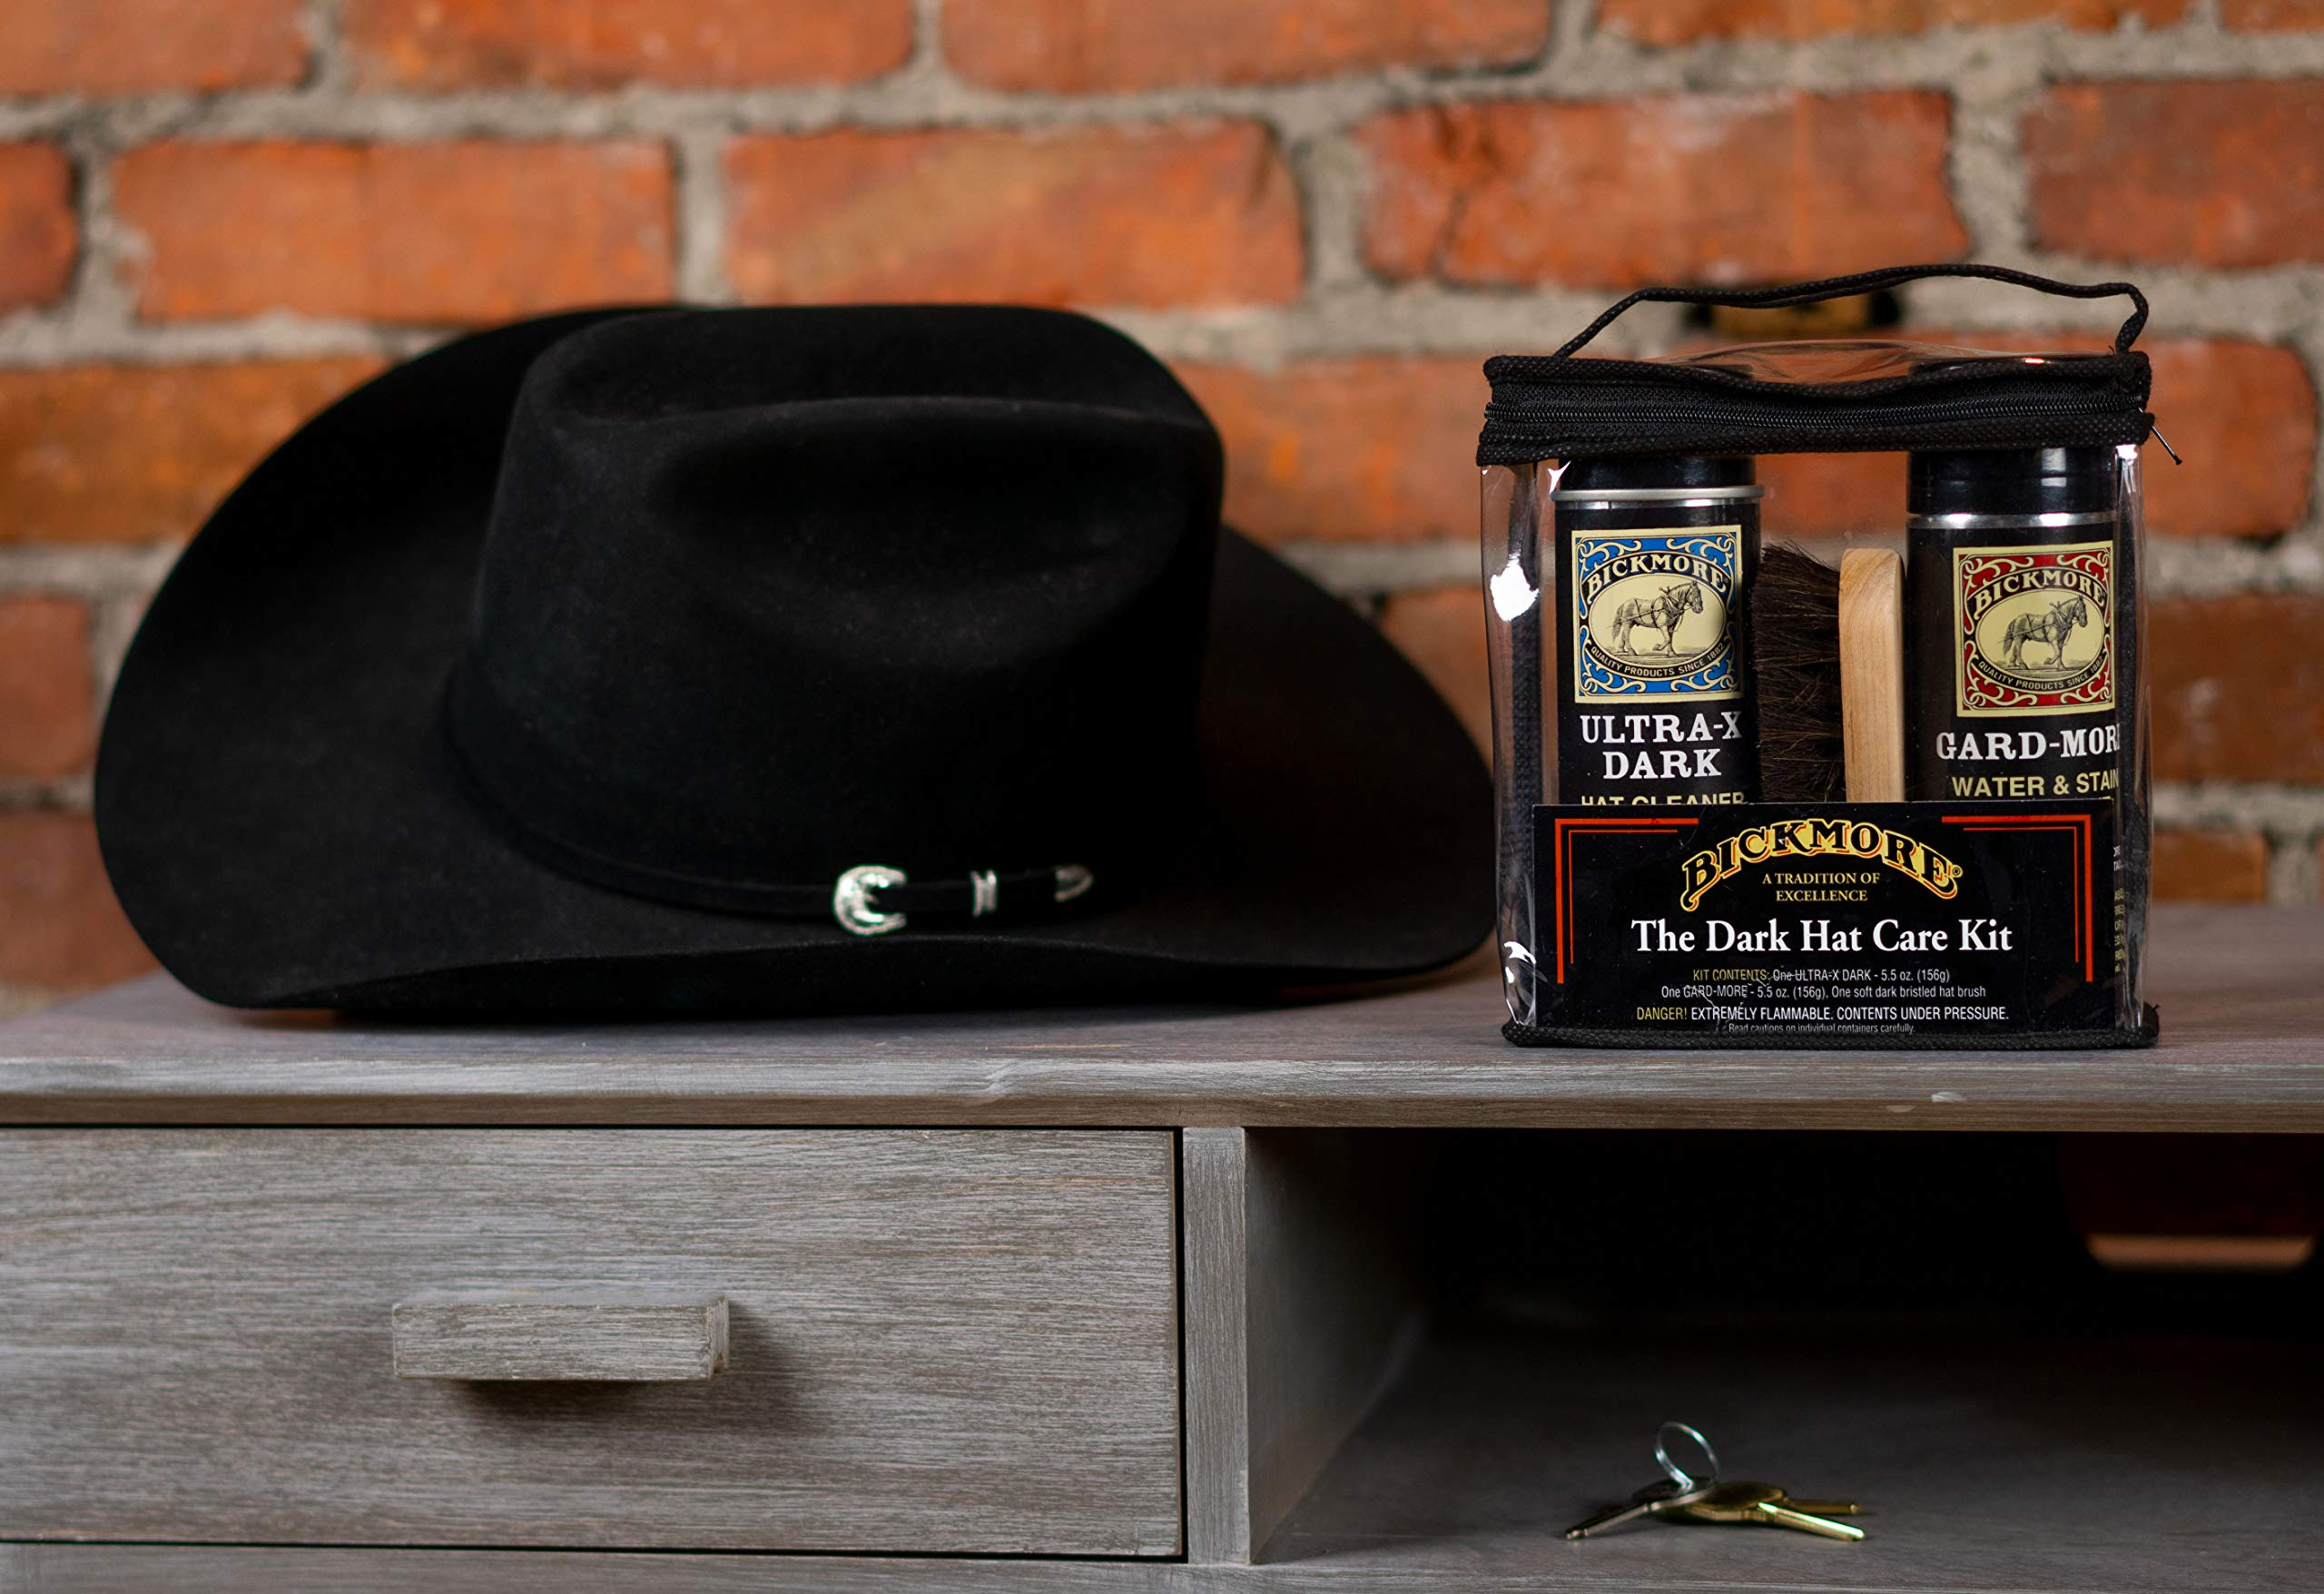 Bickmore Ultra-X Powdered Dark Hat Cleaner Kit - Remove Dirt, Dust, Fingerprints & Sweat Stains - Great for Fur - Felt Cowboy Hats, Baseball Hats, Fedoras, Sun Hats & More by Bickmore (Image #5)